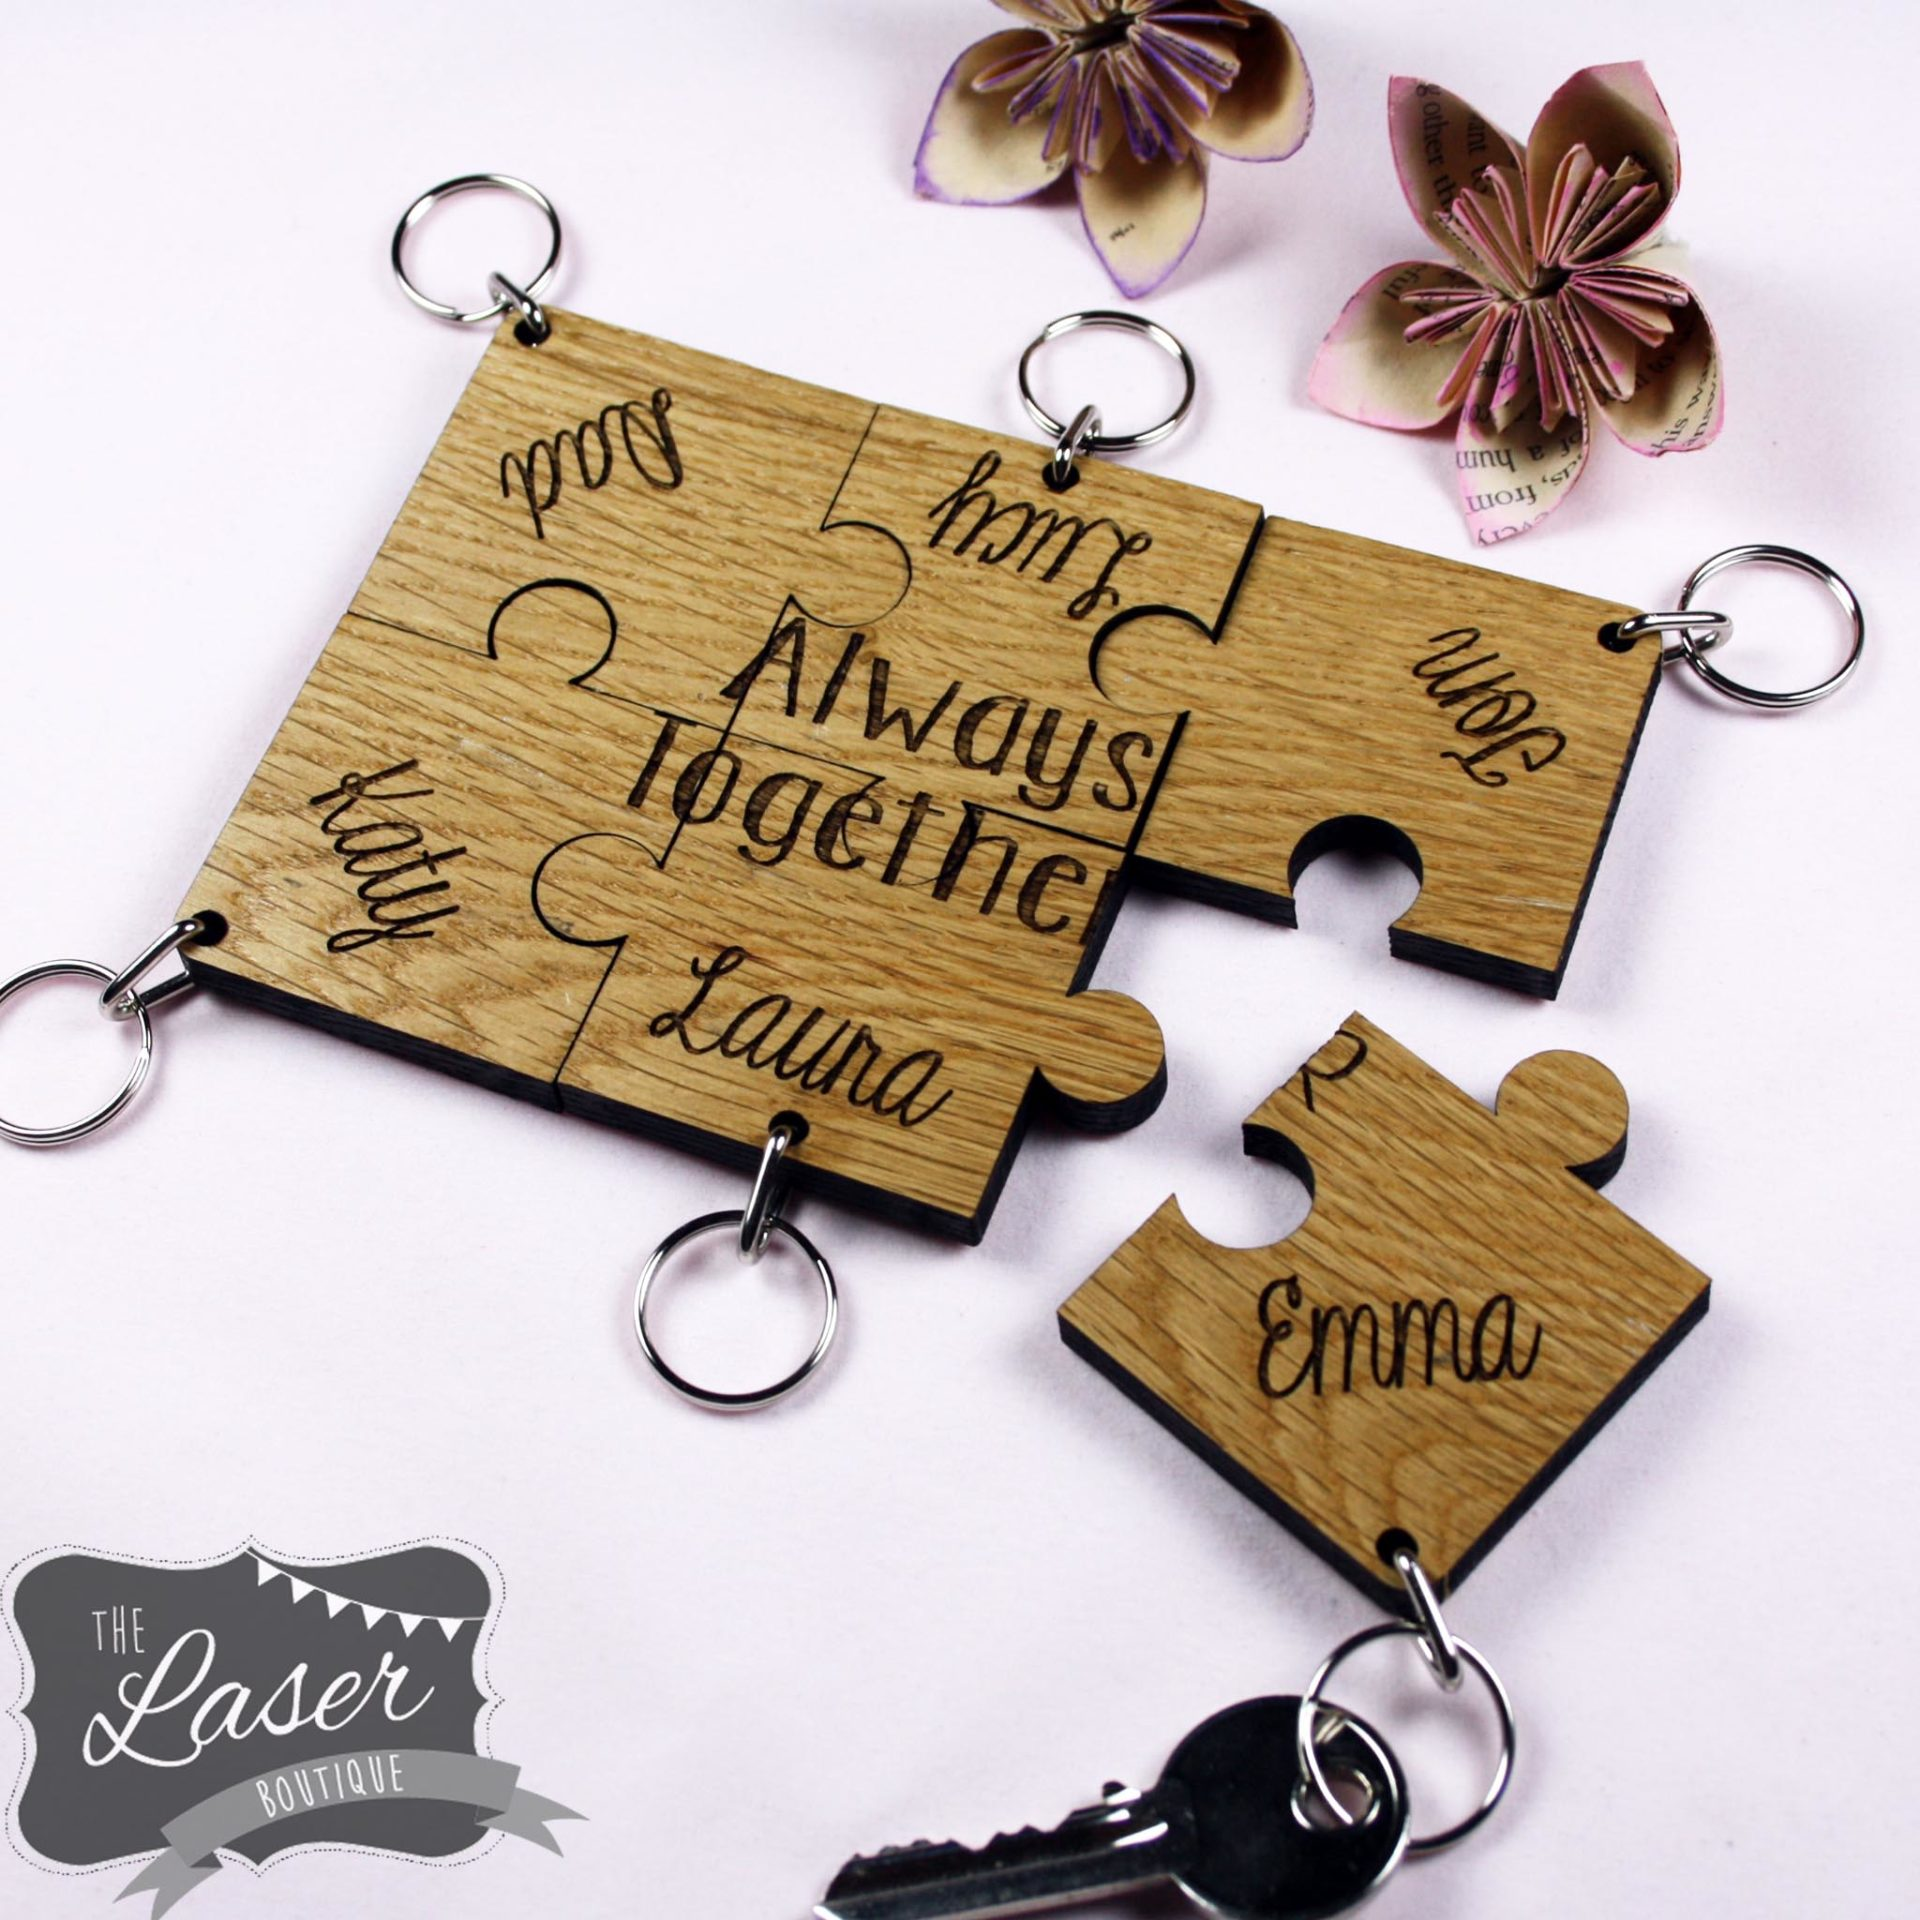 family jigsaw keyrings 4 6 the laser boutique